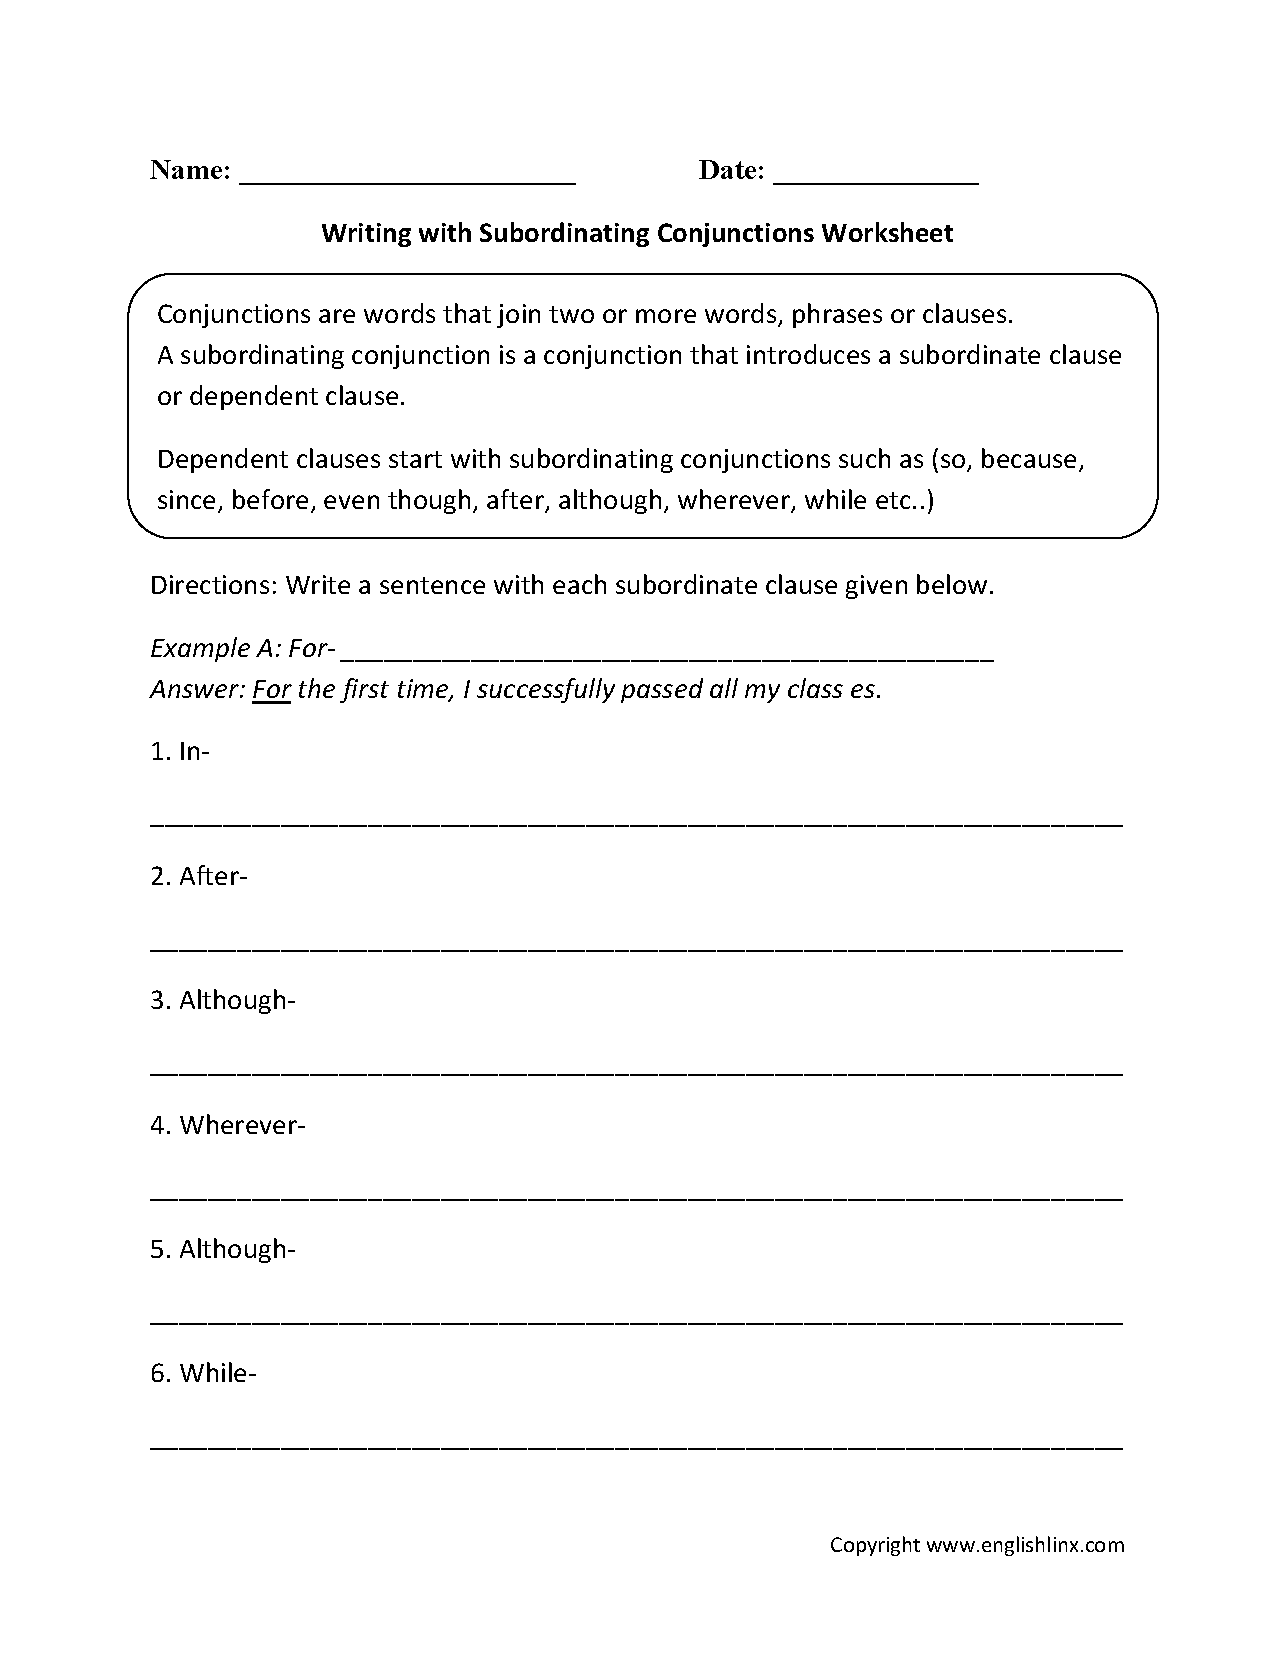 Worksheets Conjunction Worksheets 4th Grade englishlinx com conjunctions worksheets subordinating worksheets